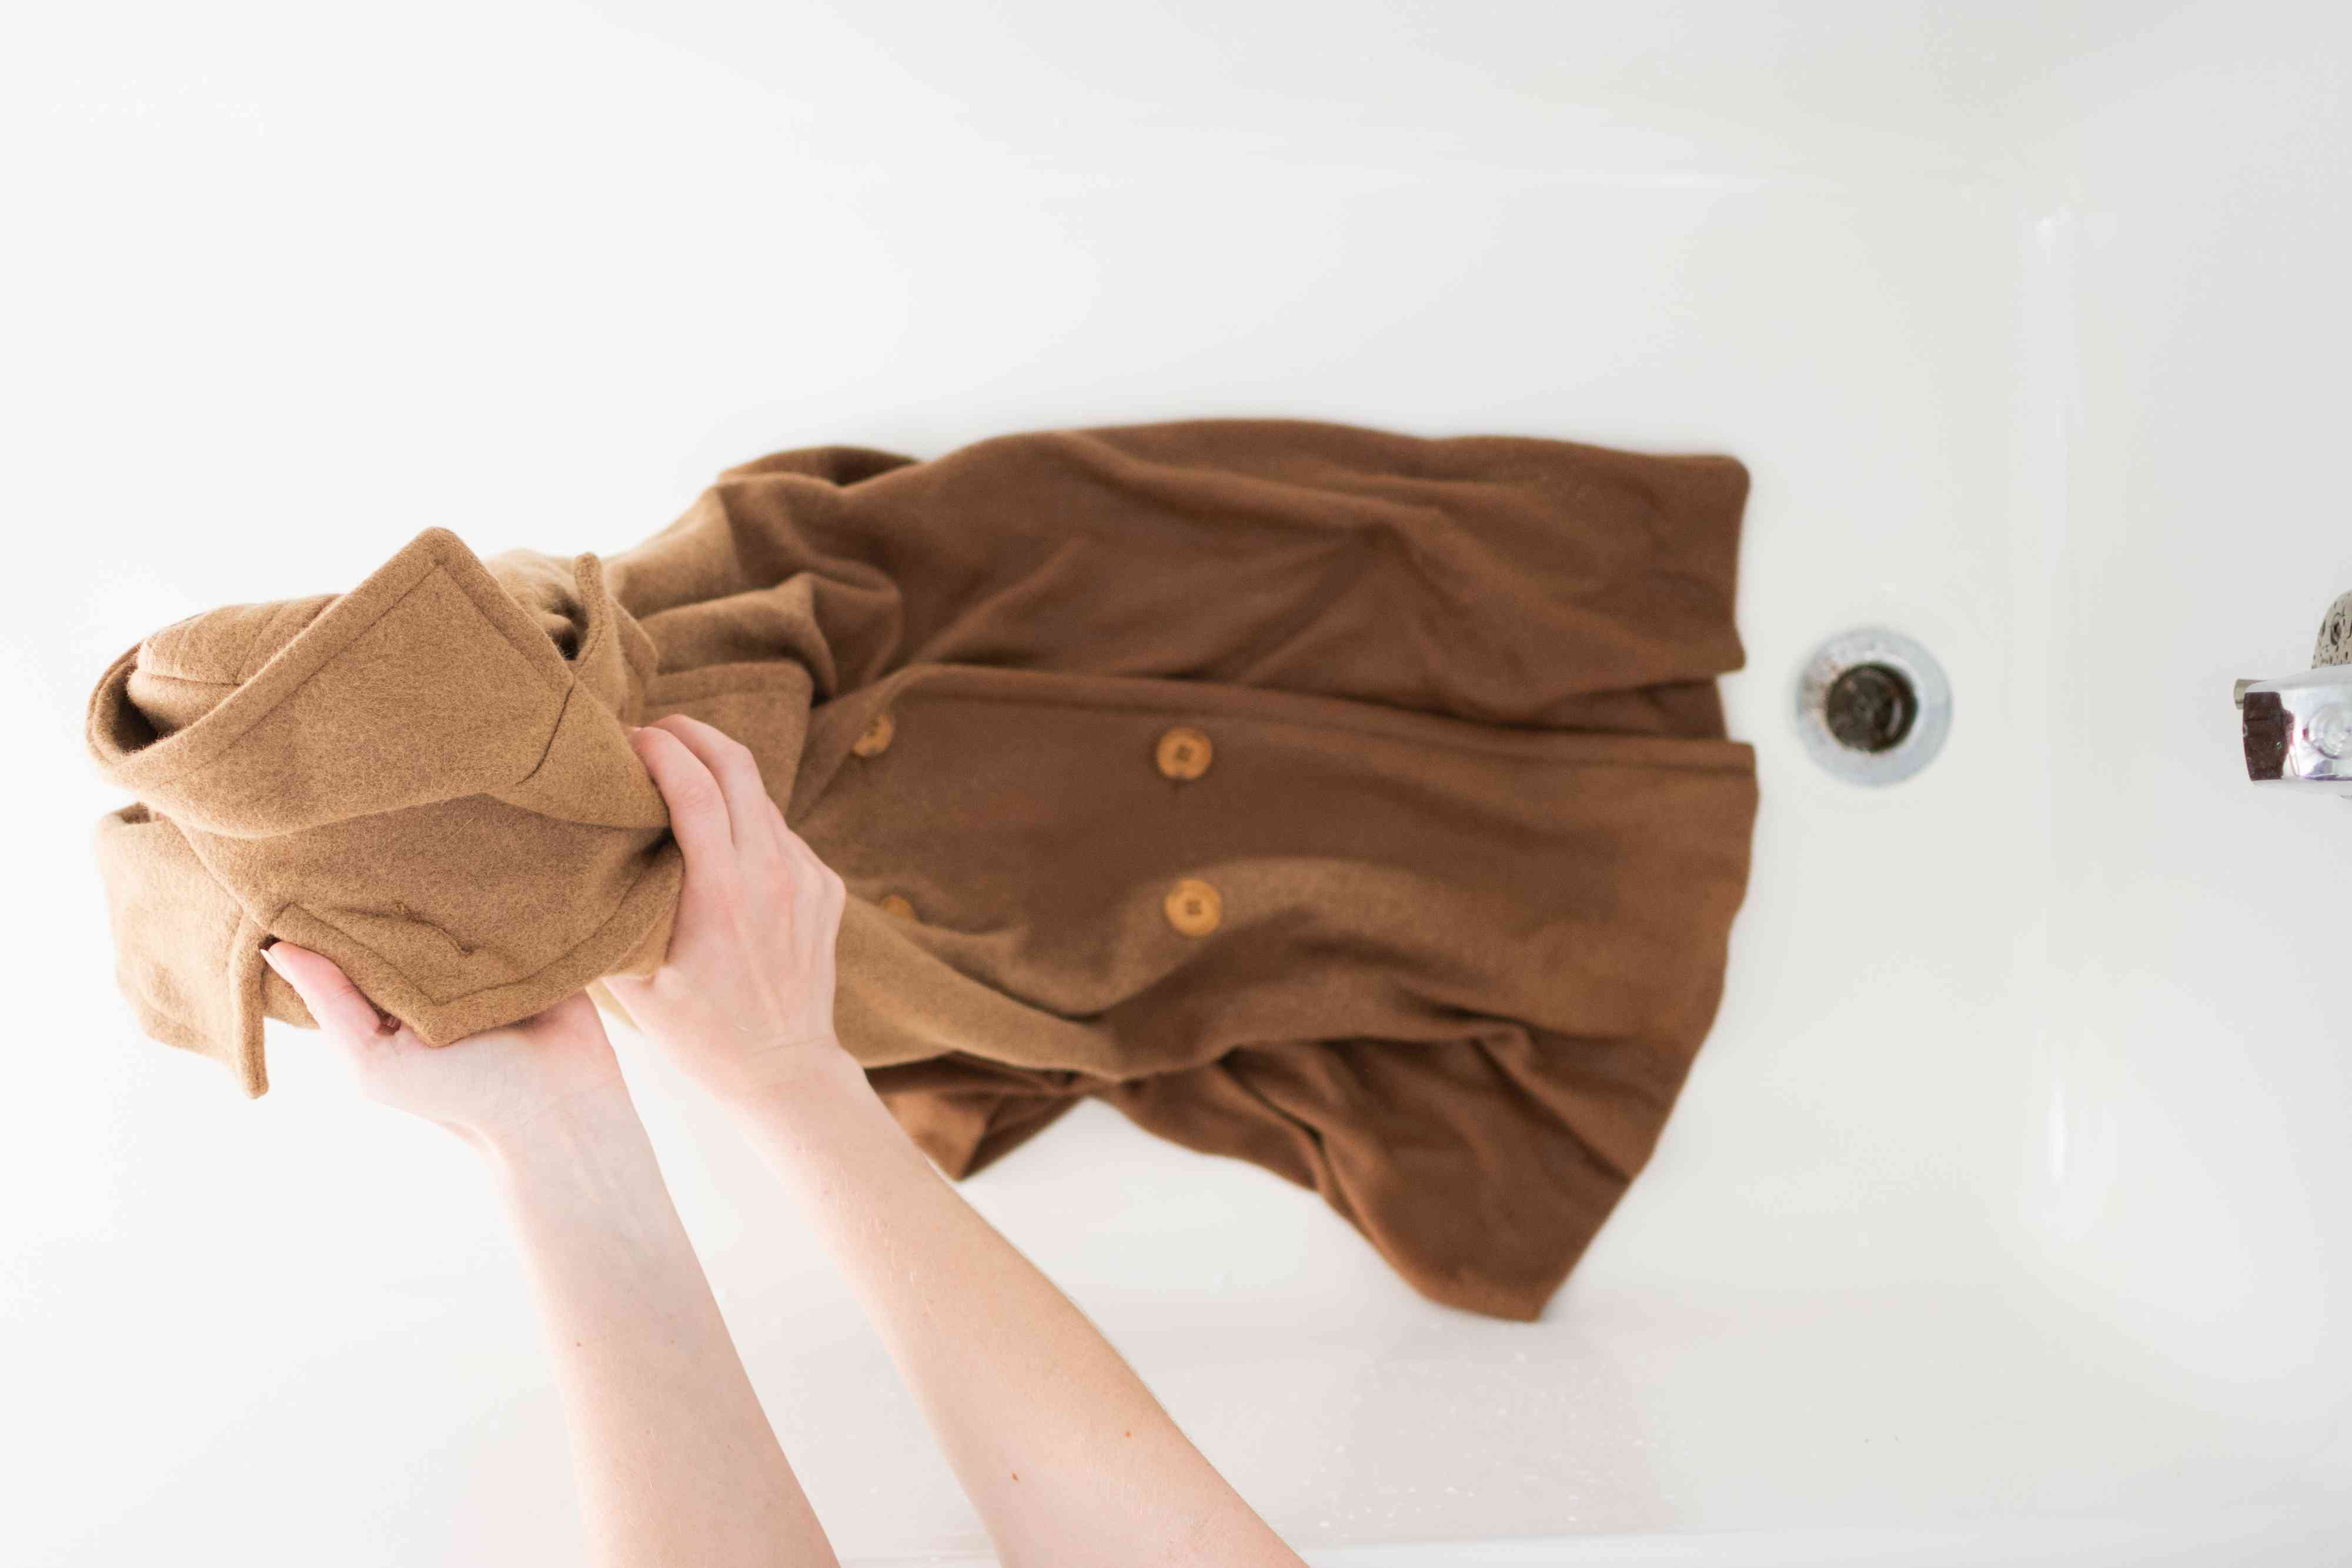 Tan wool coat squeezed gently to remove excess moisture from rinsing